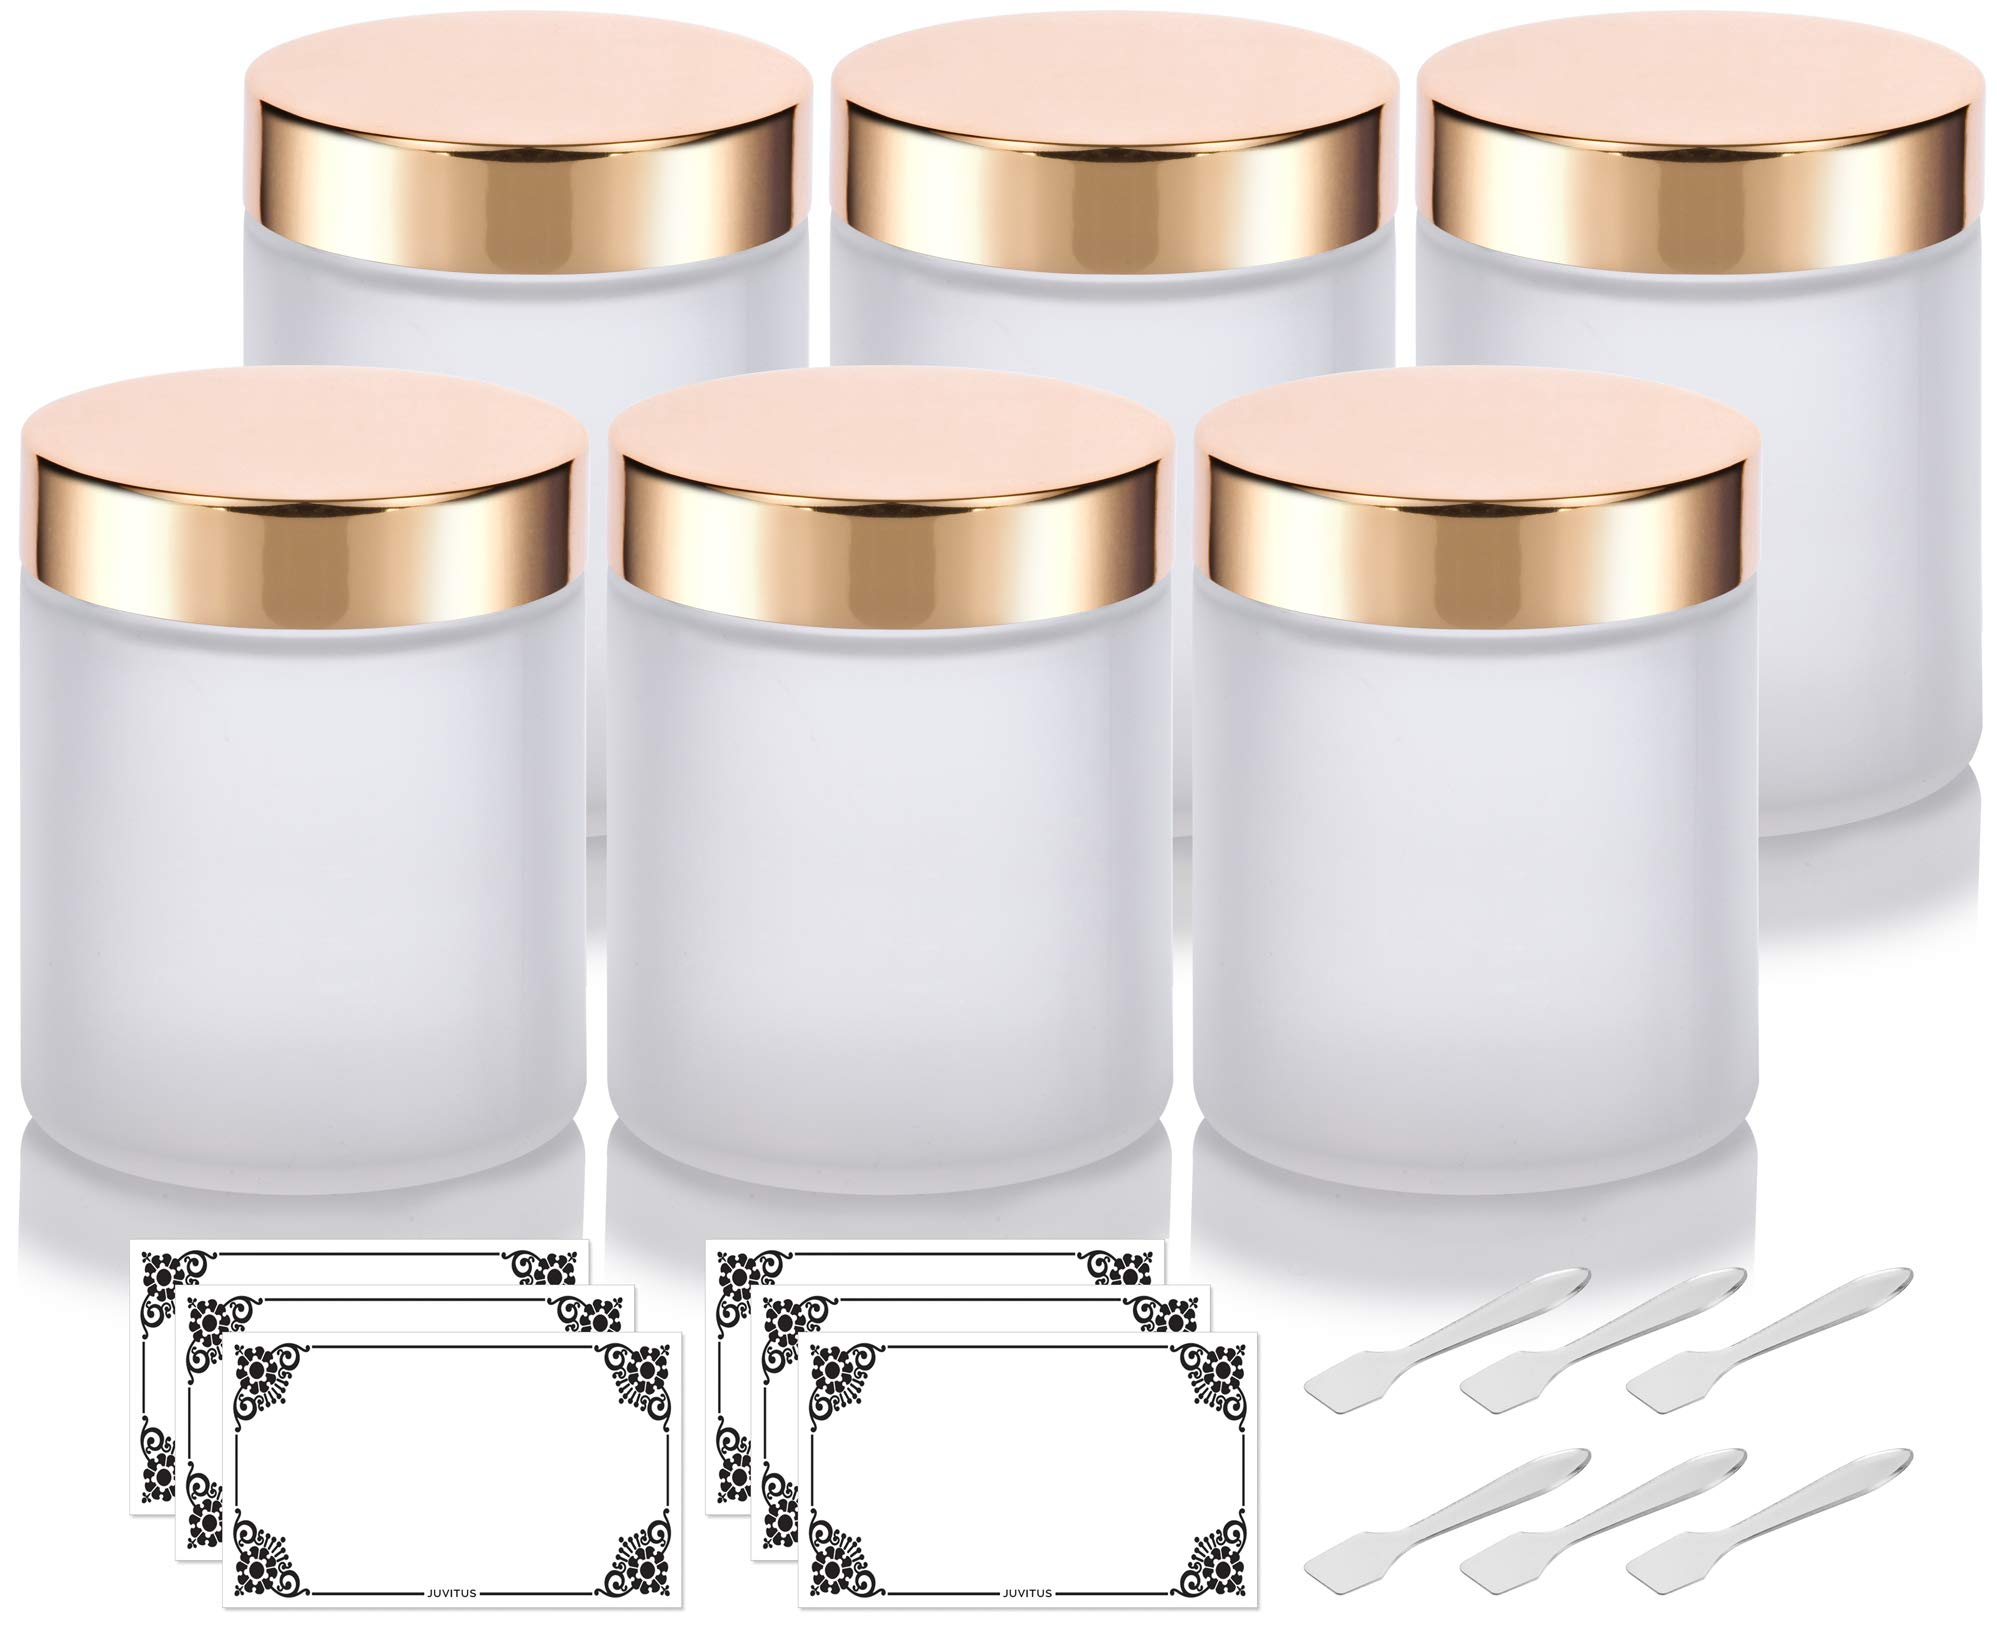 Large Frosted Clear Thick Glass Straight Sided Jar with Gold Metal Overshell Lid - 8 oz / 240 ml (6 pack) + Spatulas and Labels